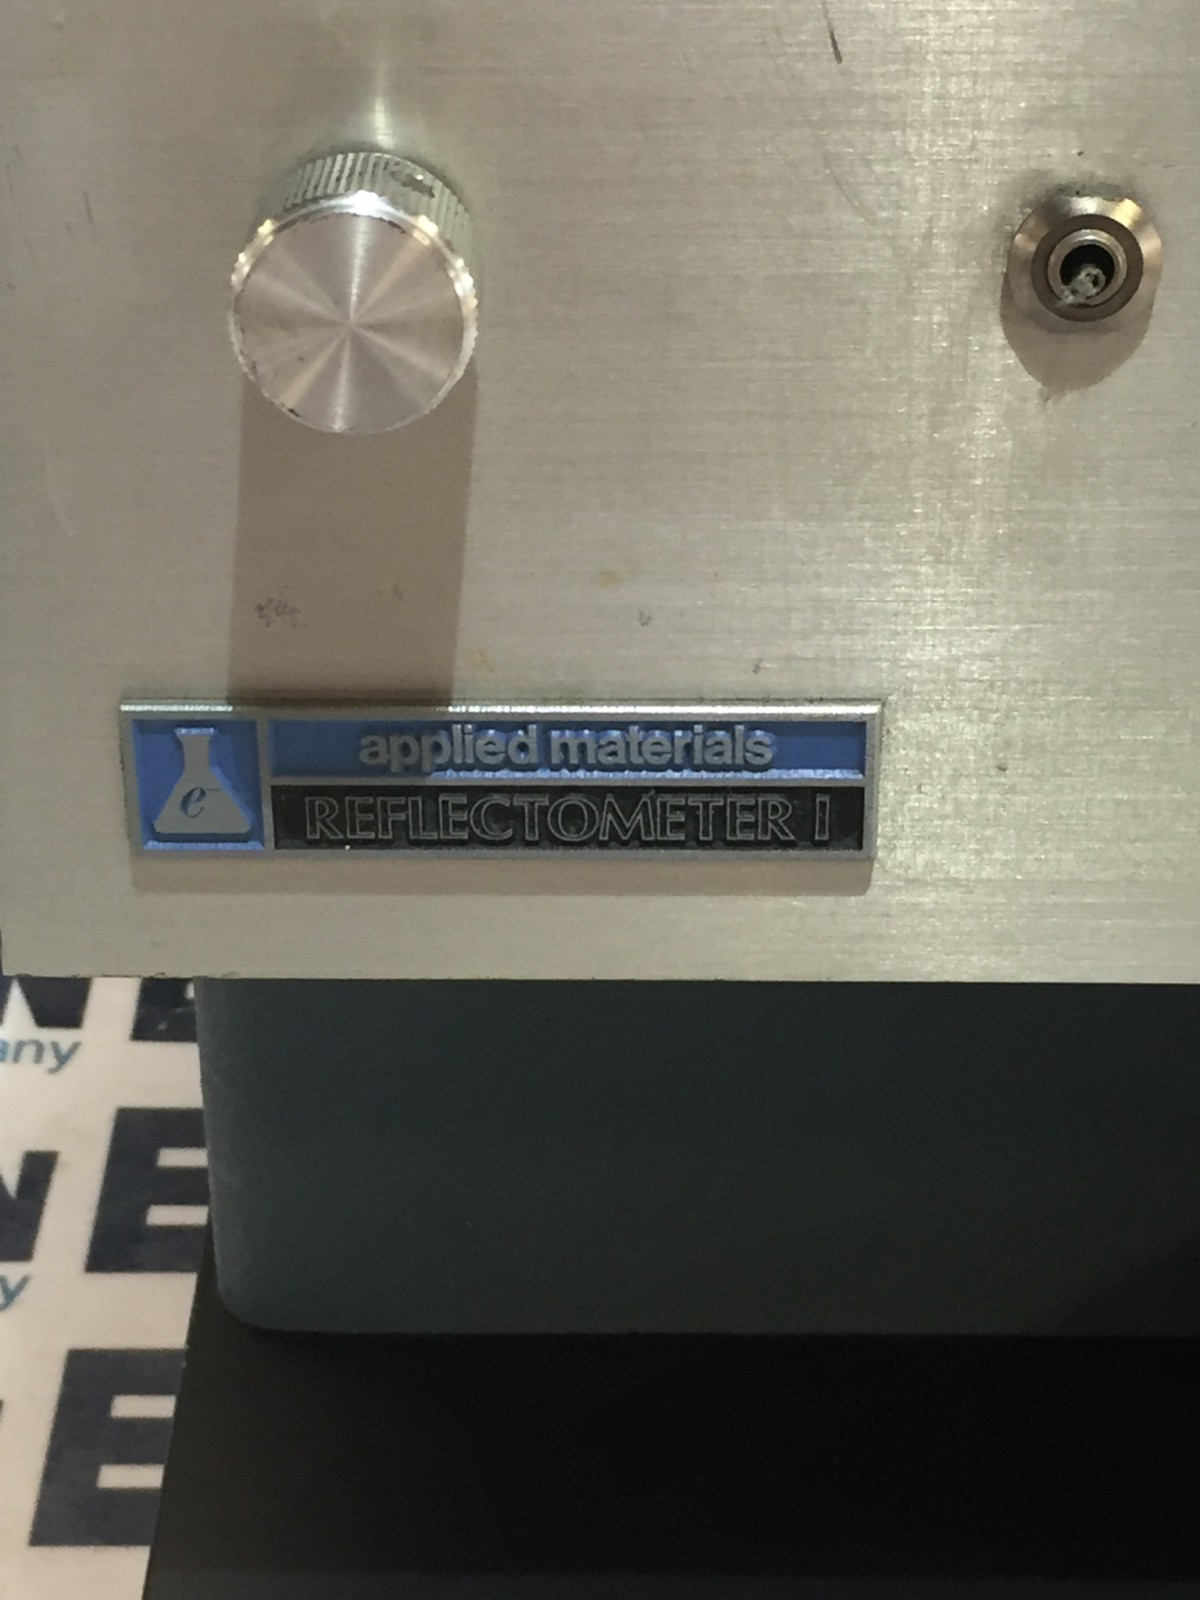 APPLIED MATERIALS REFLECTOMETER I